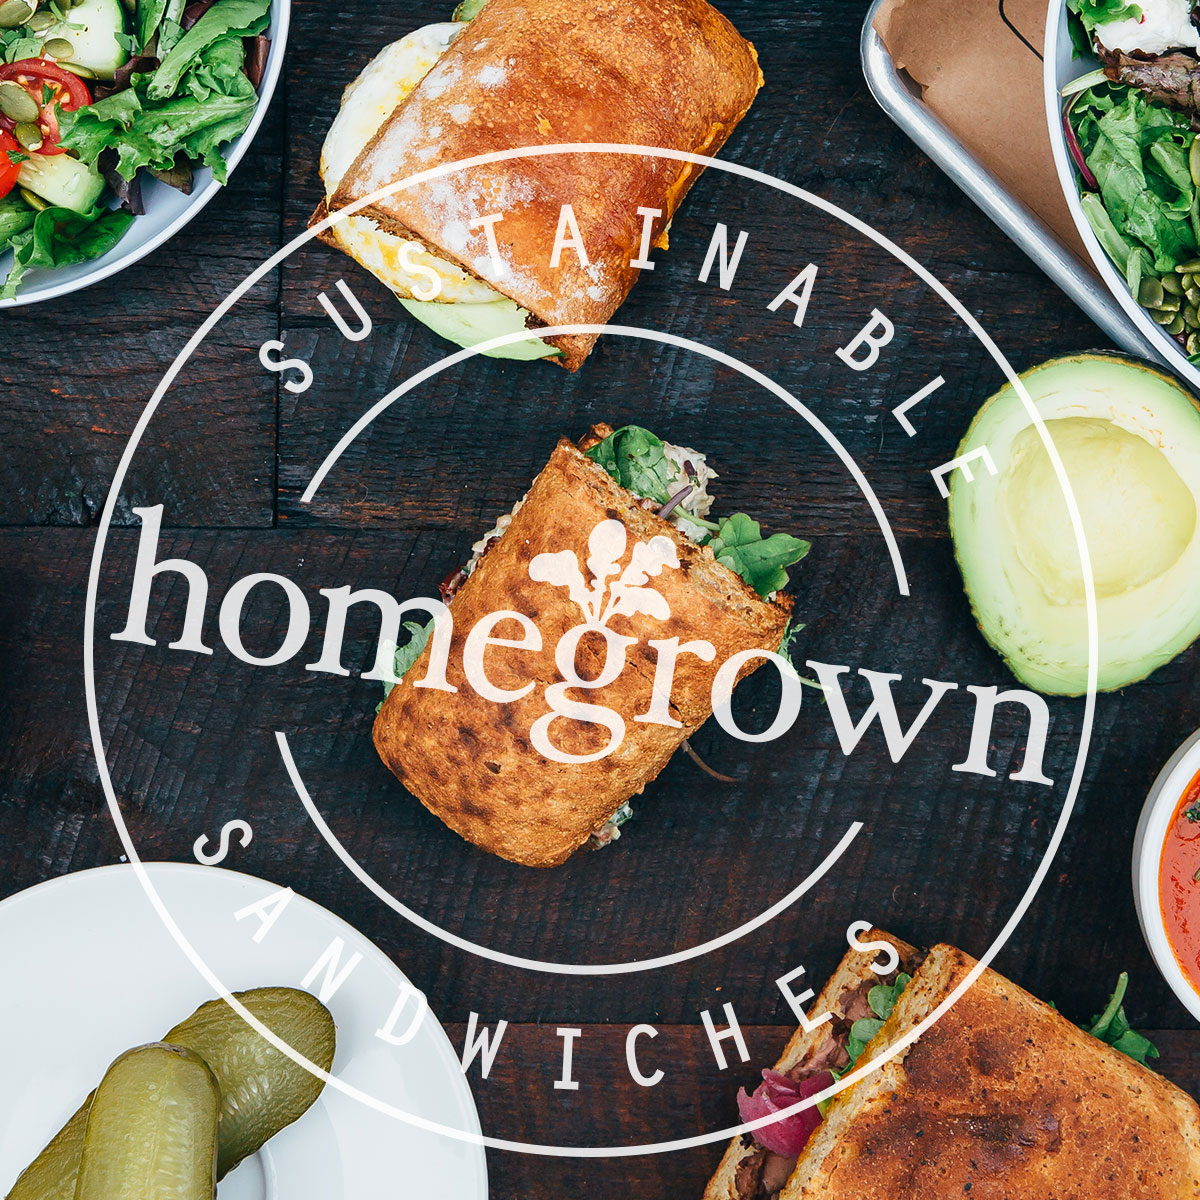 Homegrown Logo Seal over image of sandwich and ingredients